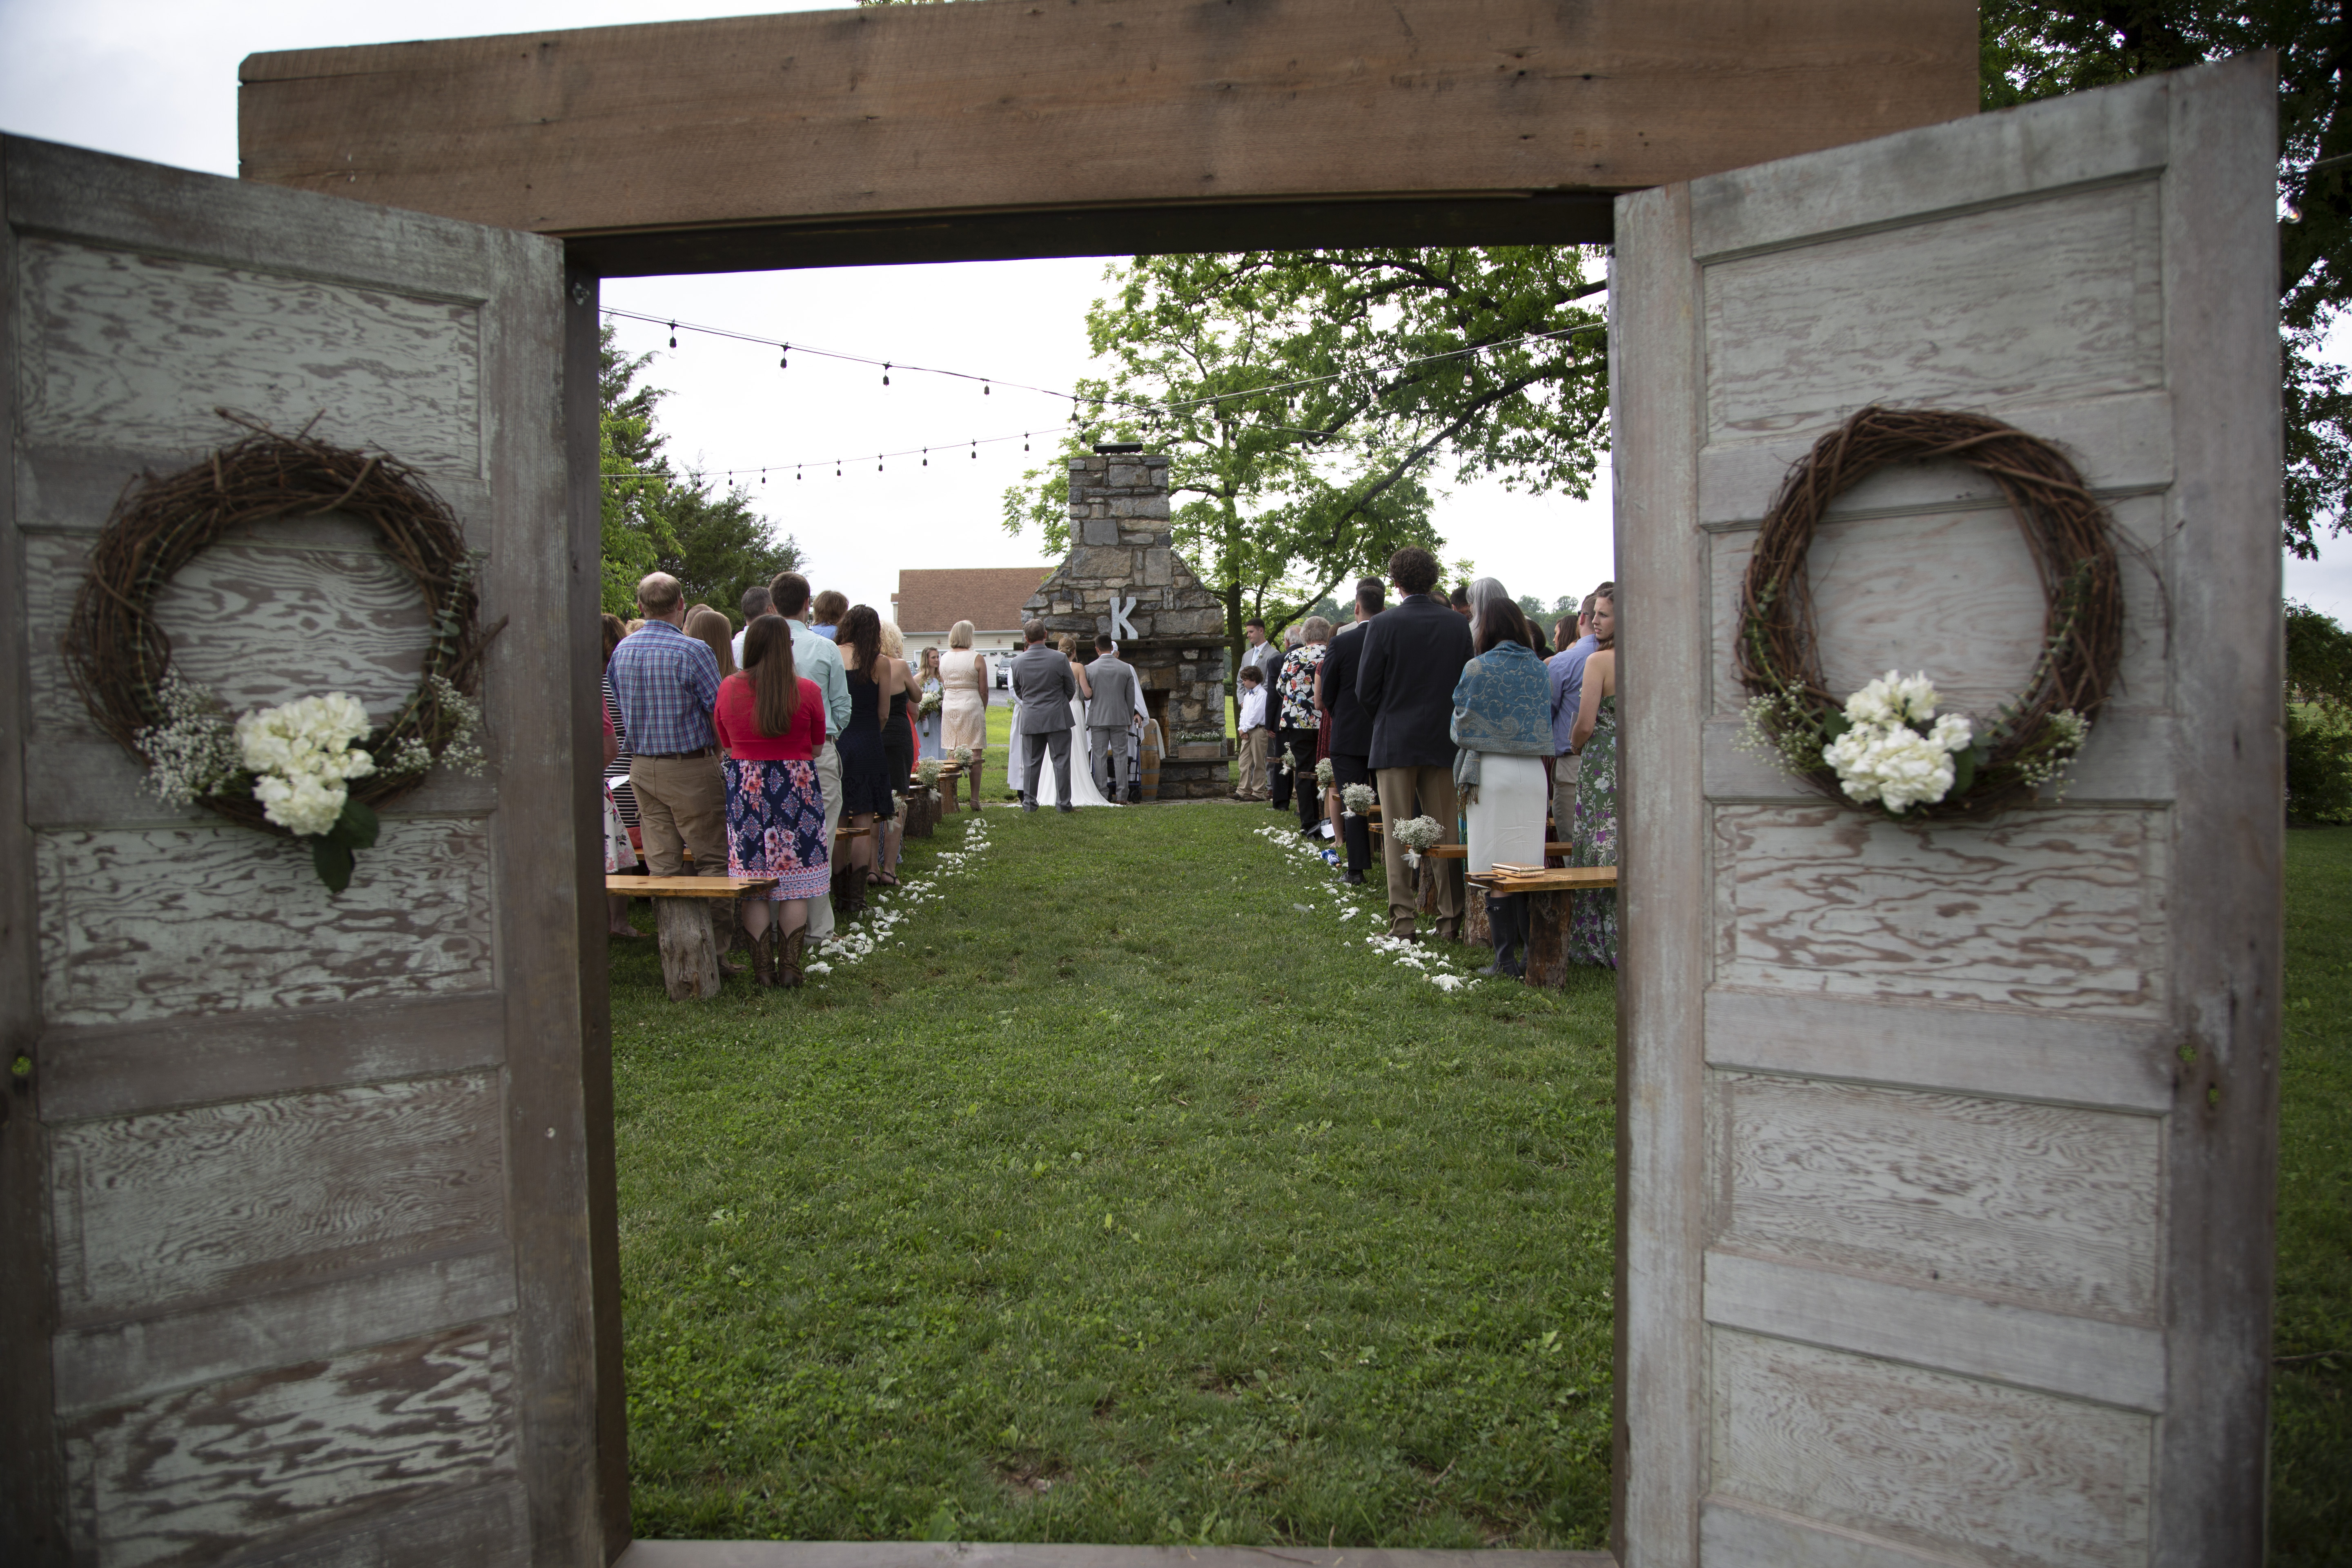 outdoor rustic wedding ceremony with vintage door arch